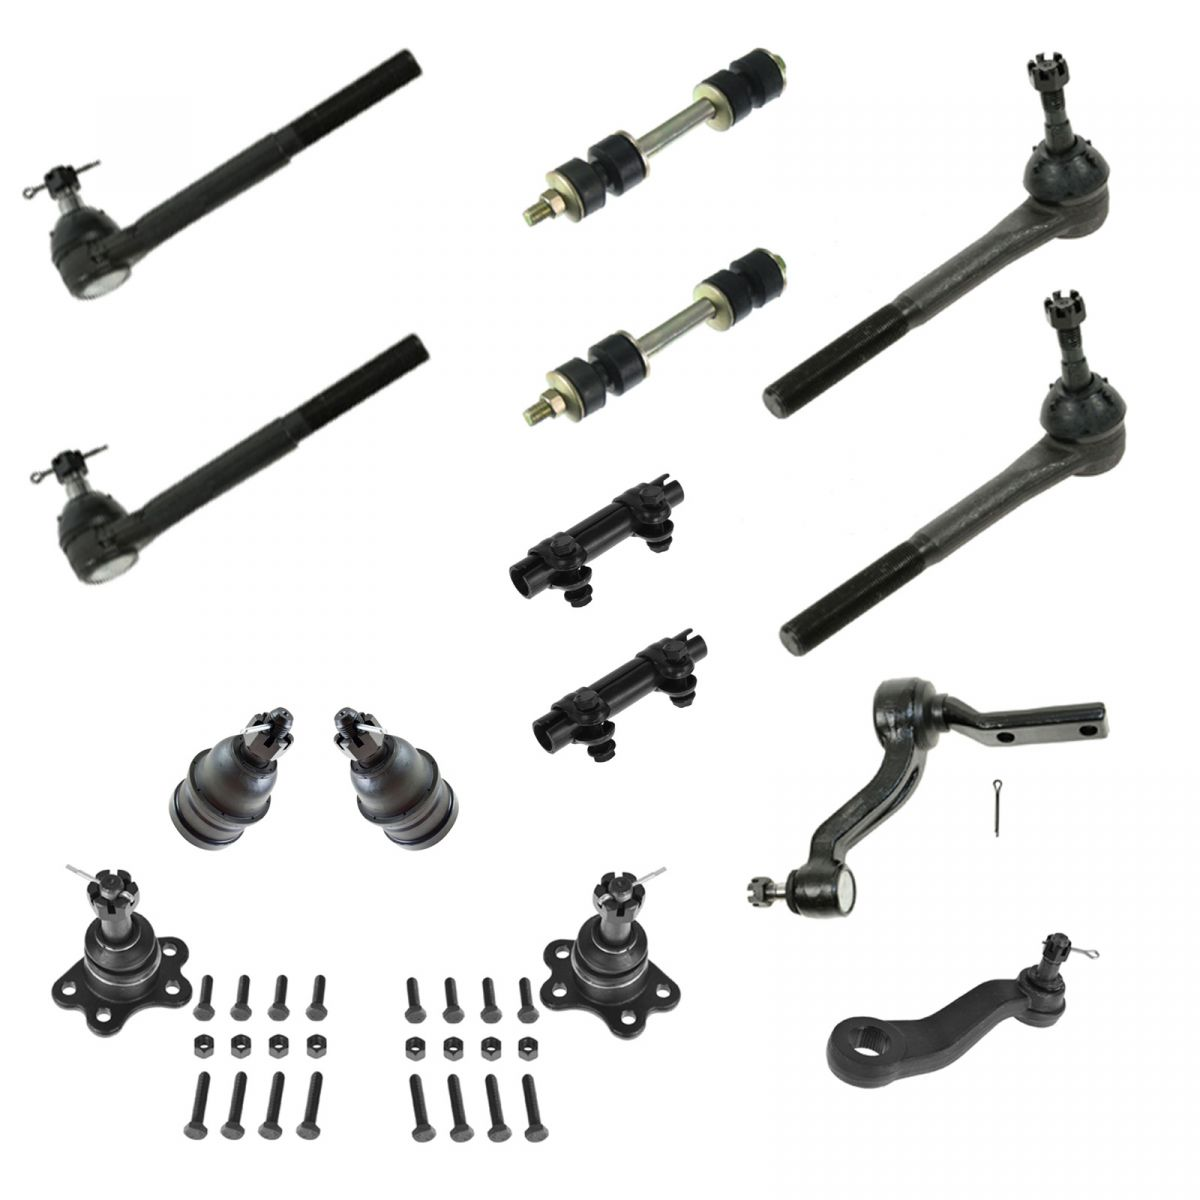 14 Pc Kit Ball Joints Tie Rod Ends Pitman Idler Sway Bar Sleeves 2 Year Warranty